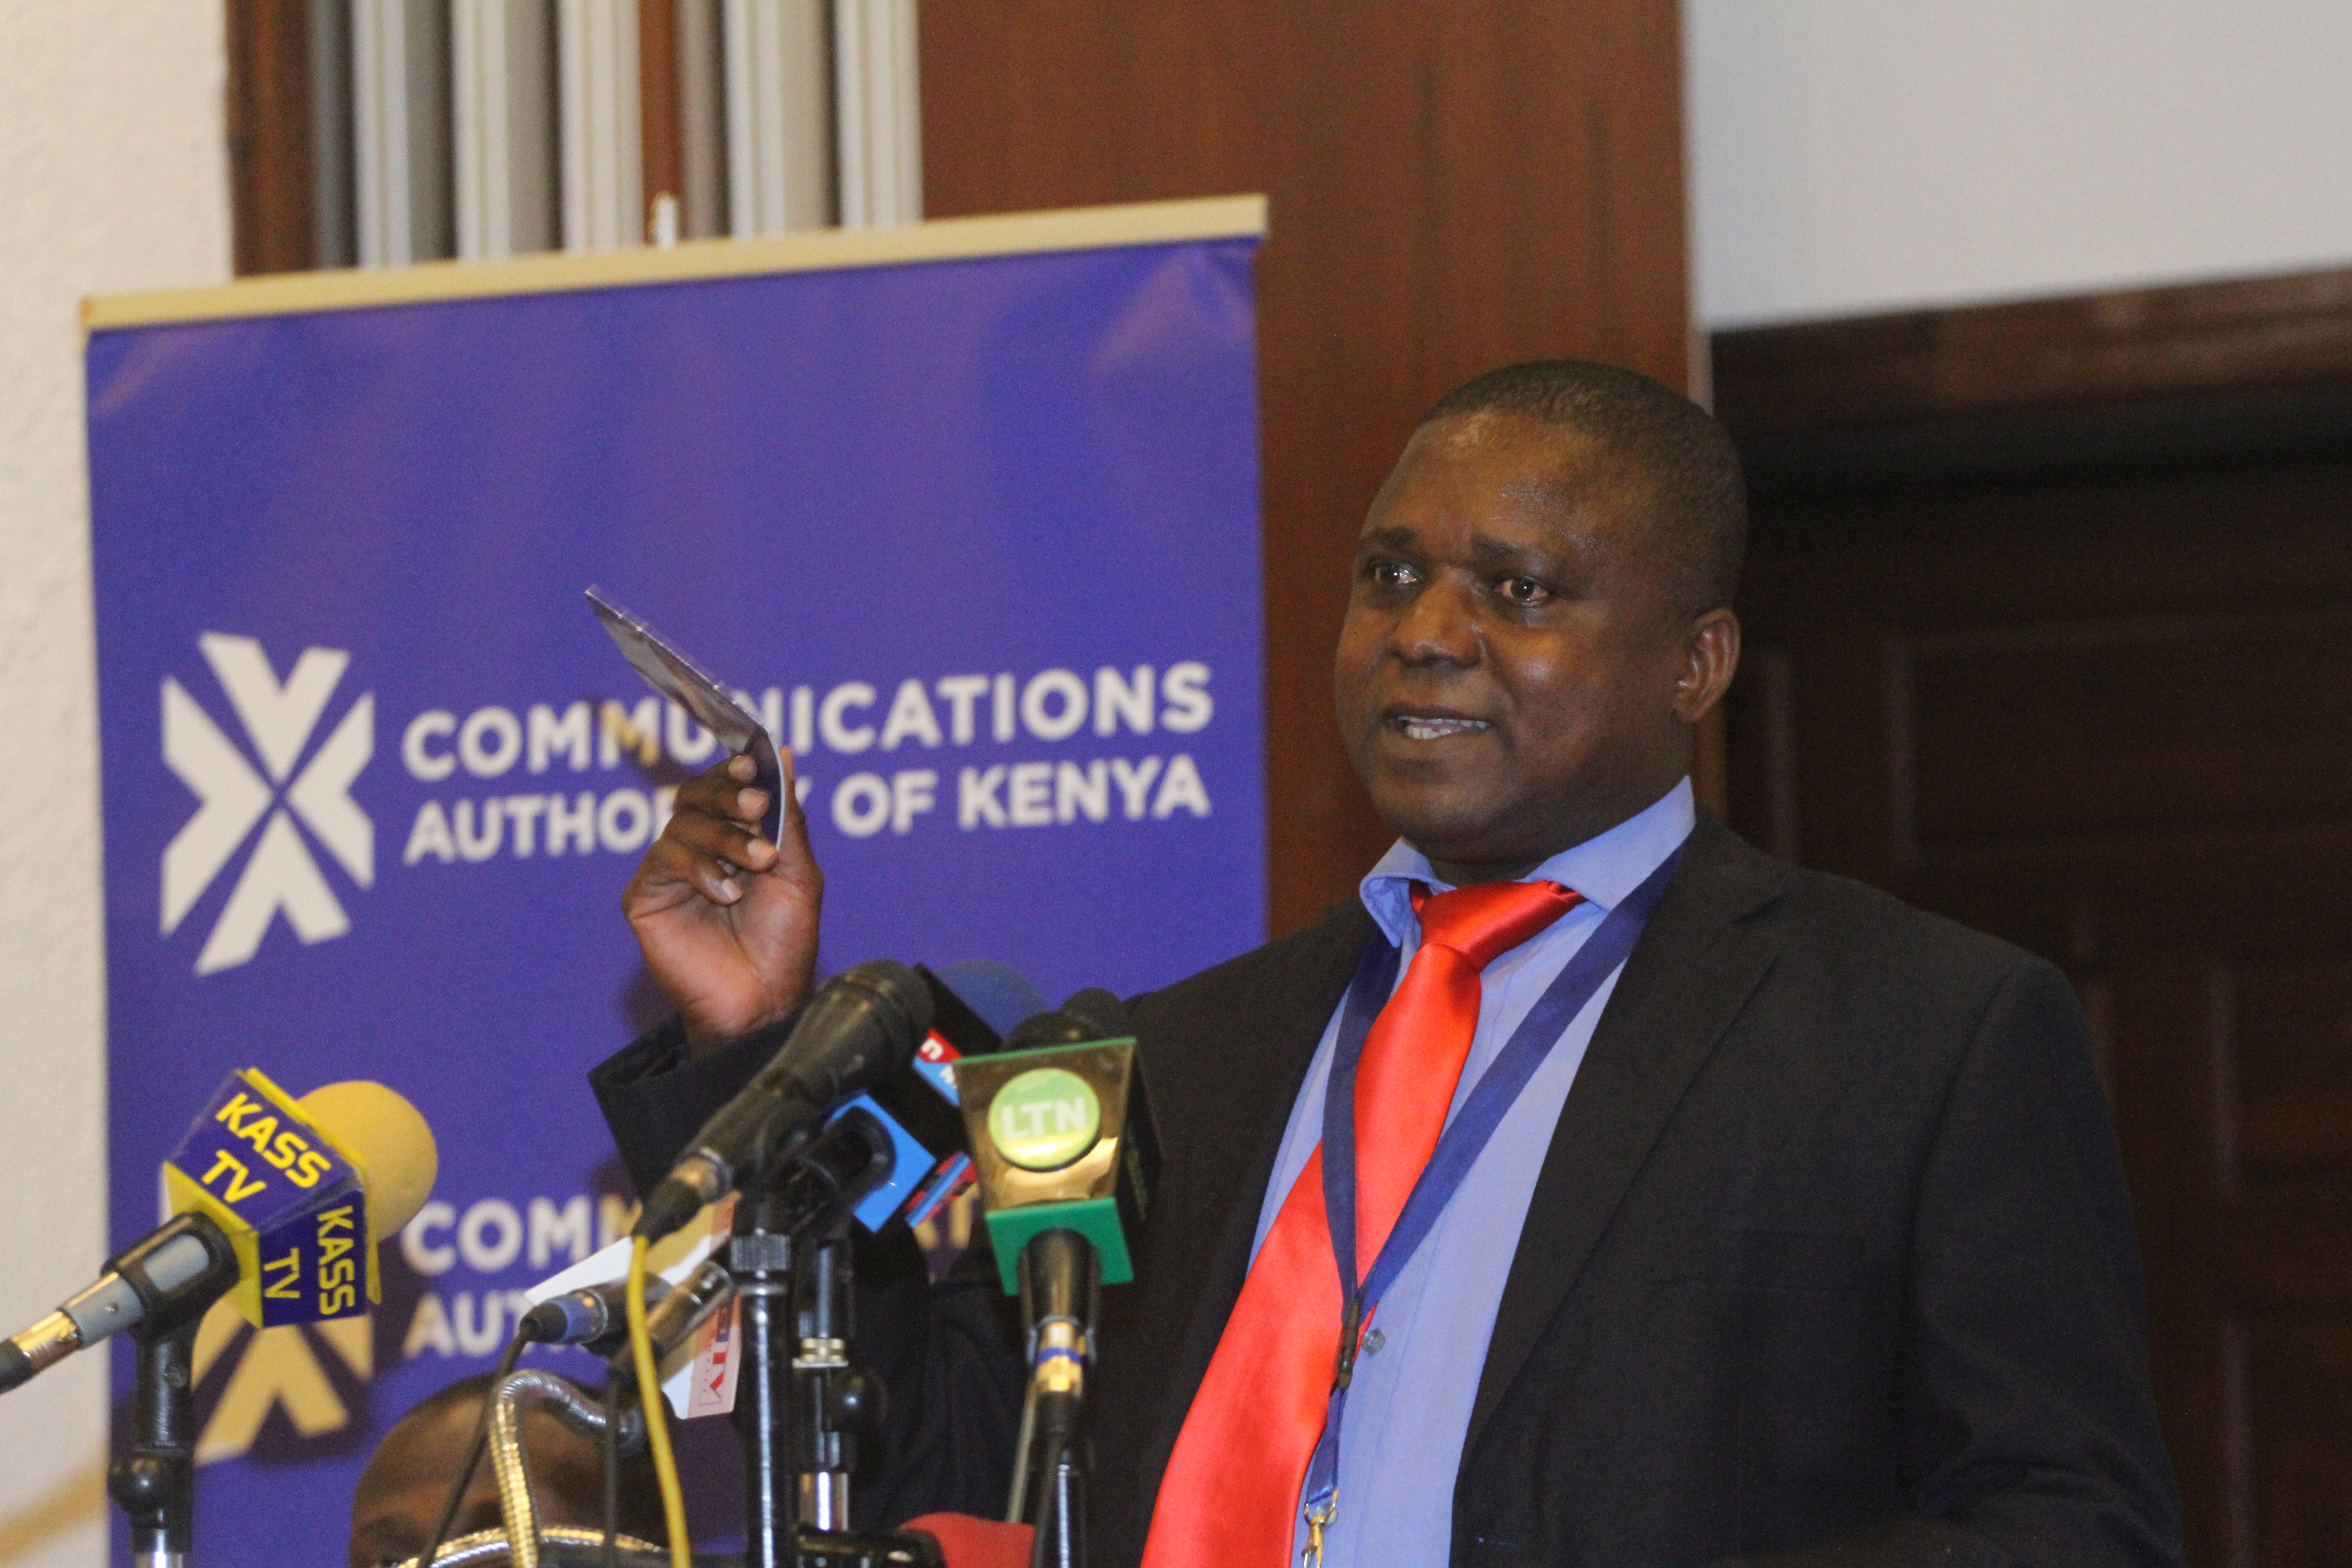 MCK leads series of media trainings ahead of general election